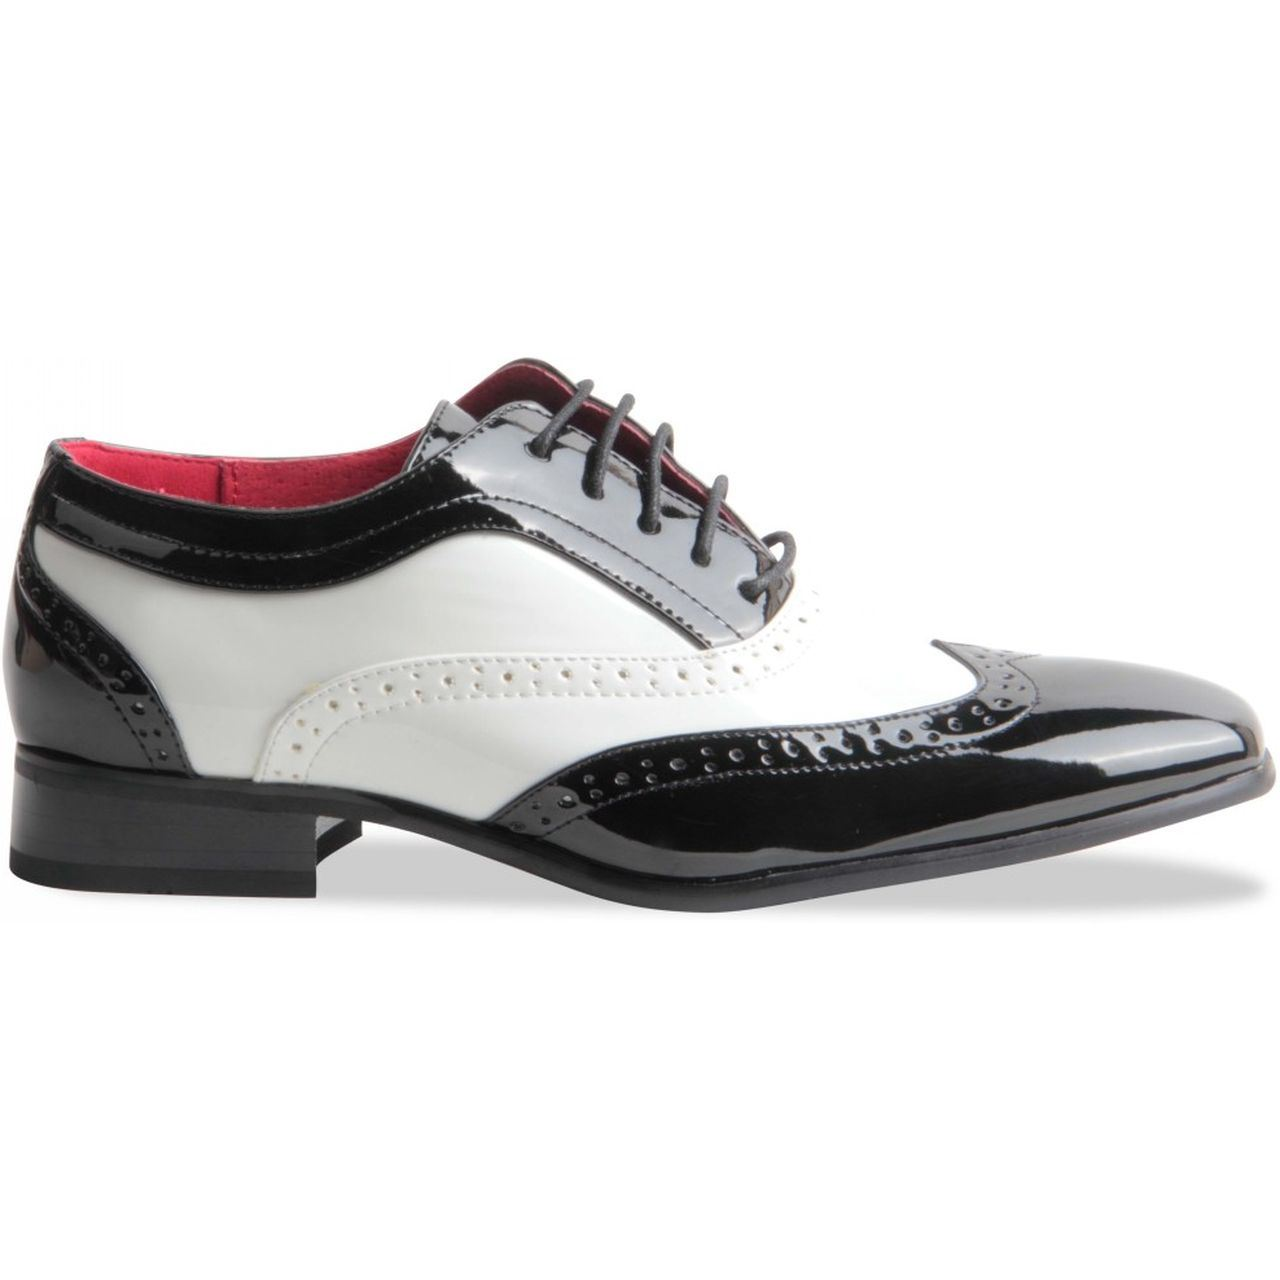 Details about Shoes Bicolor Black Red Wingtip Brogue Style Oxford Style Gangster Mens show original title